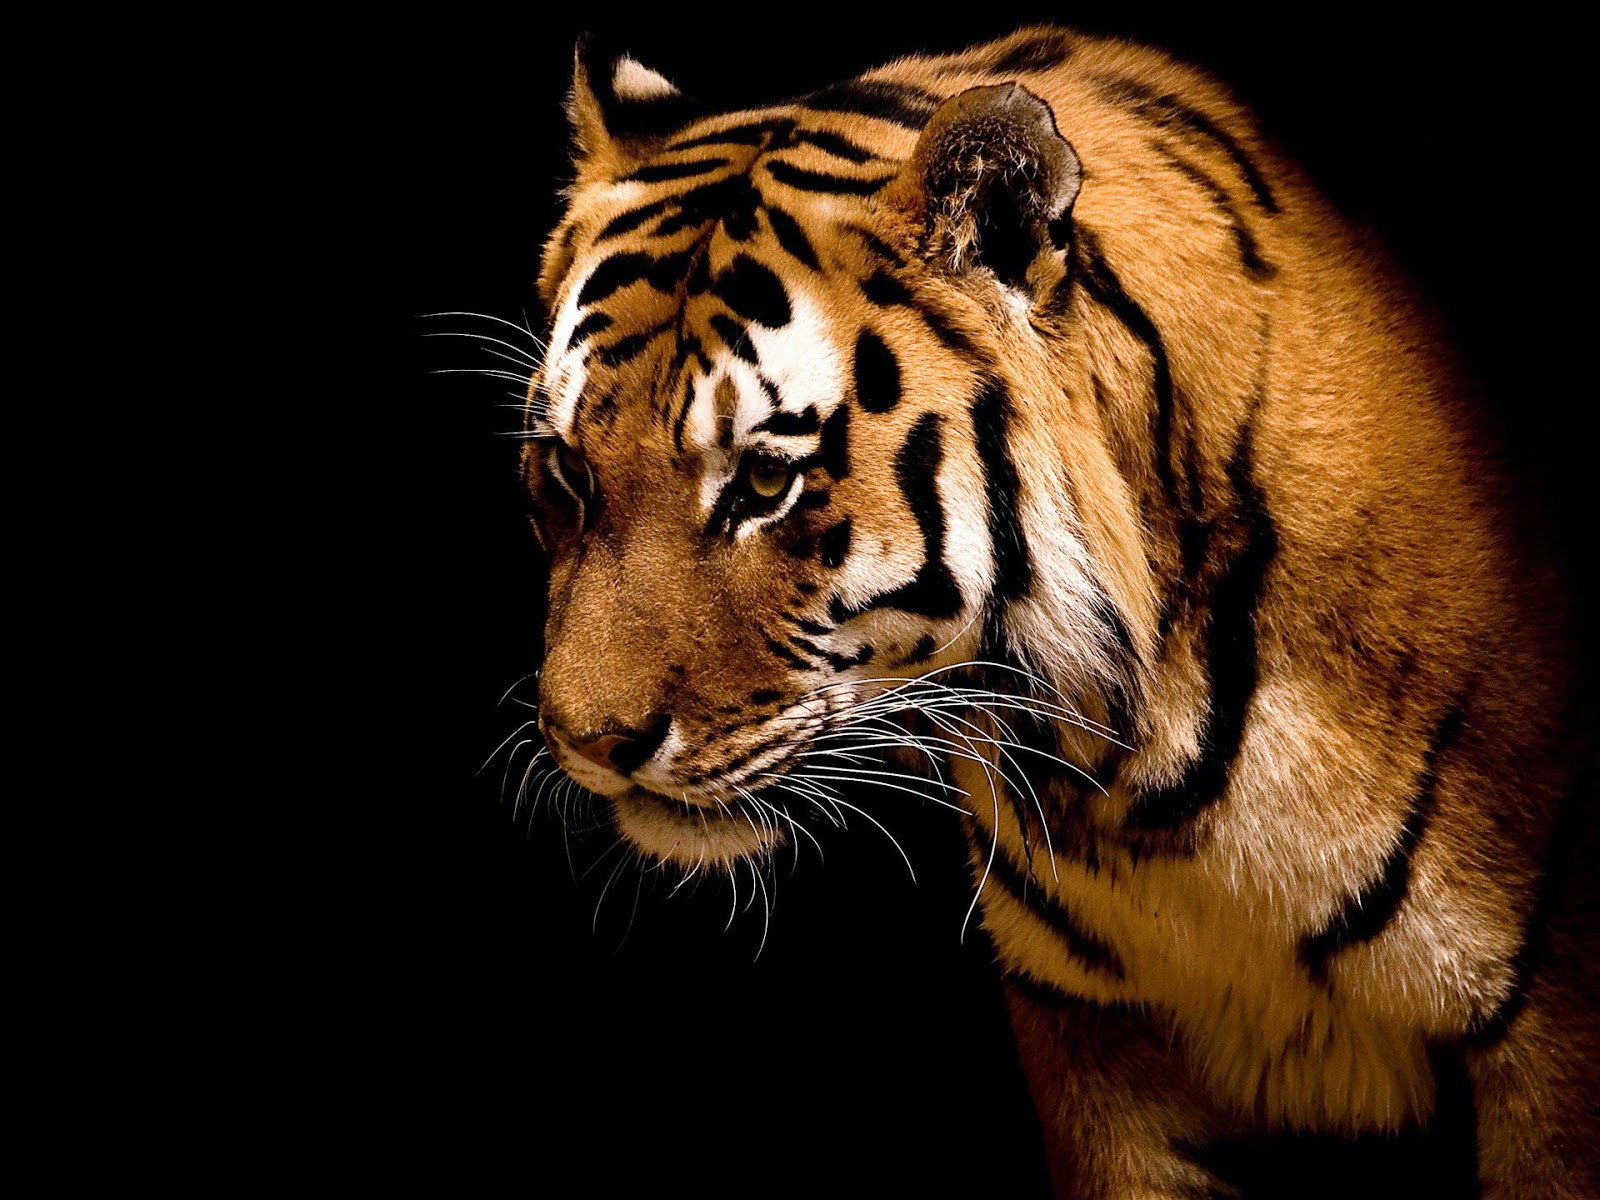 Tiger Hd Wallpapers: HD Wallpapers: Tiger Full HD Wallpapers